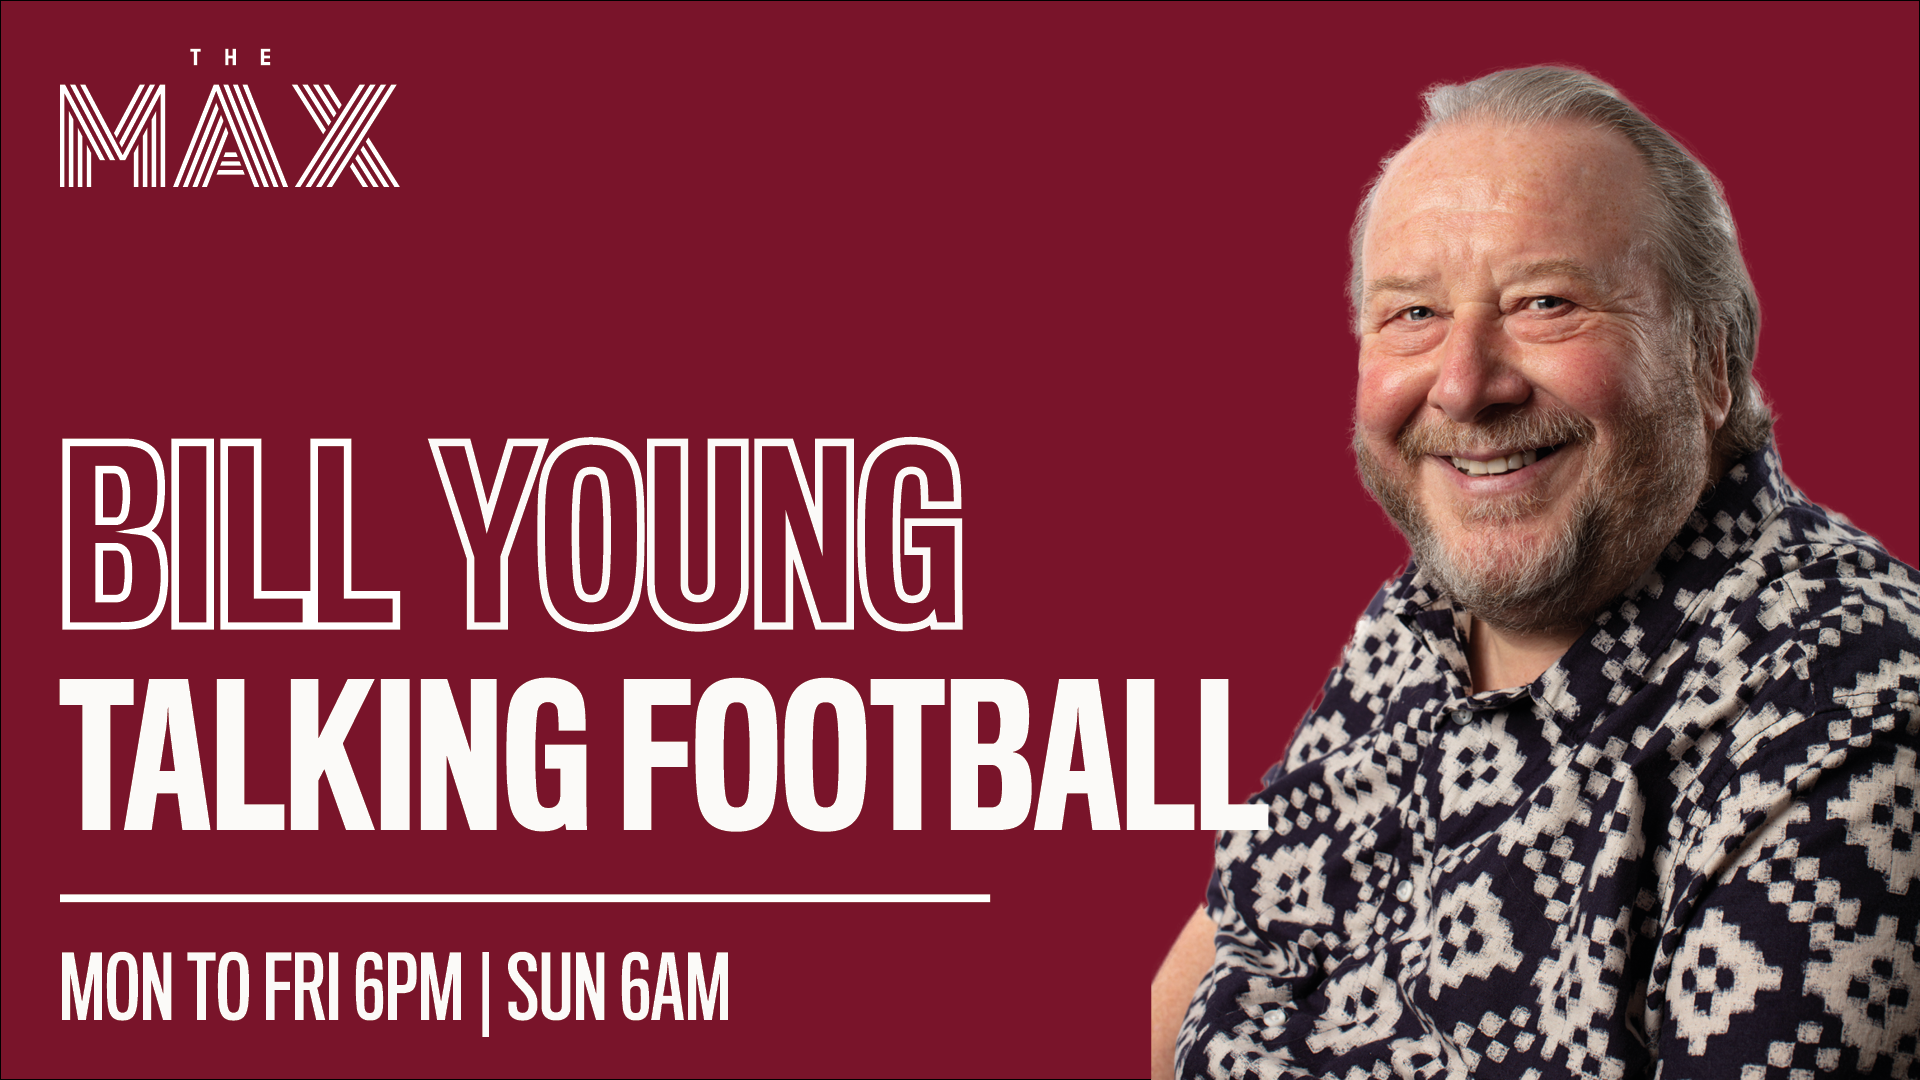 Talking Football with Bill Young - Wednesday 7th April